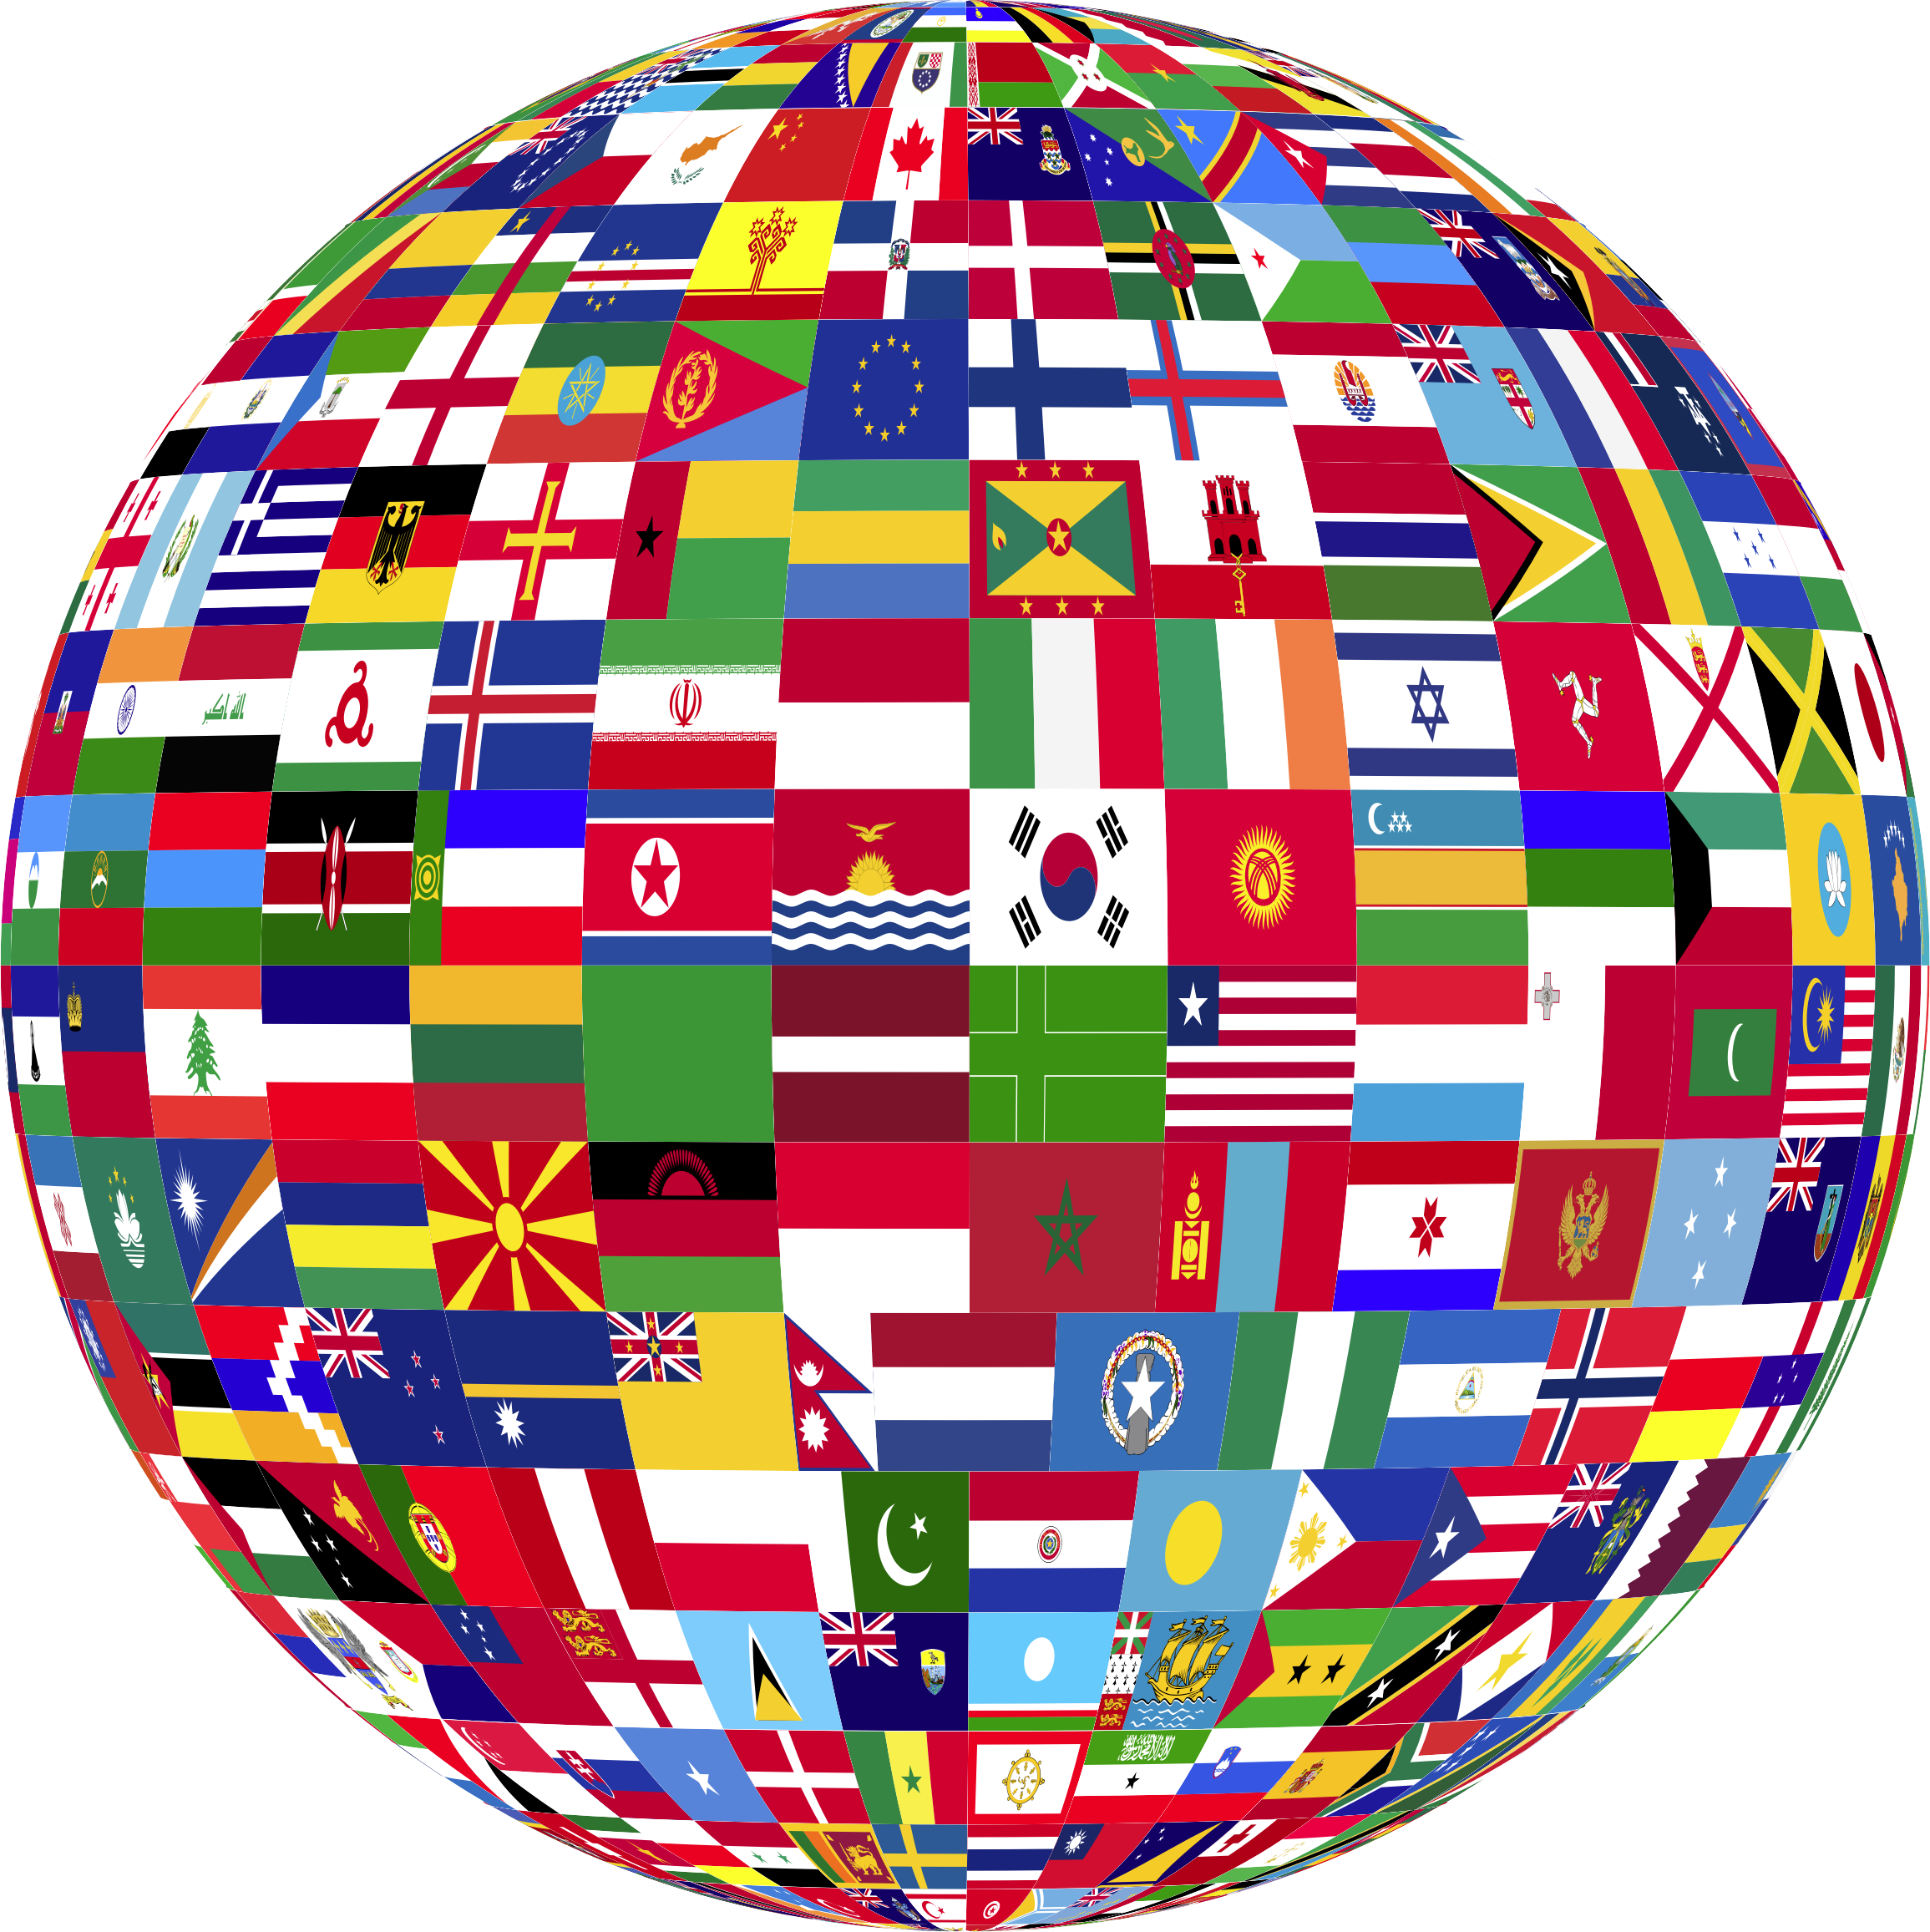 Free world flag clipart clip art black and white stock Globe with flags clipart images gallery for free download | MyReal ... clip art black and white stock